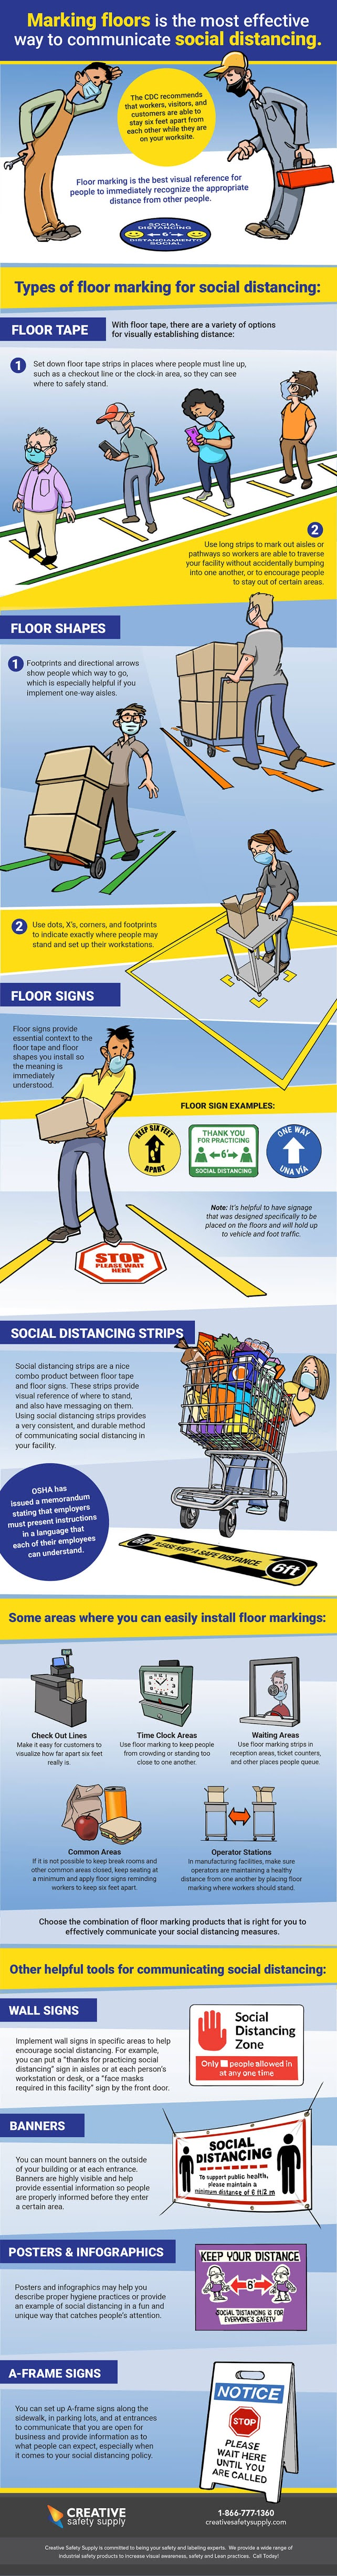 Marking Floors to Communicate Social Distancing #infographic #Floor Marking #infographics #Social Distancing #Workplace Safety